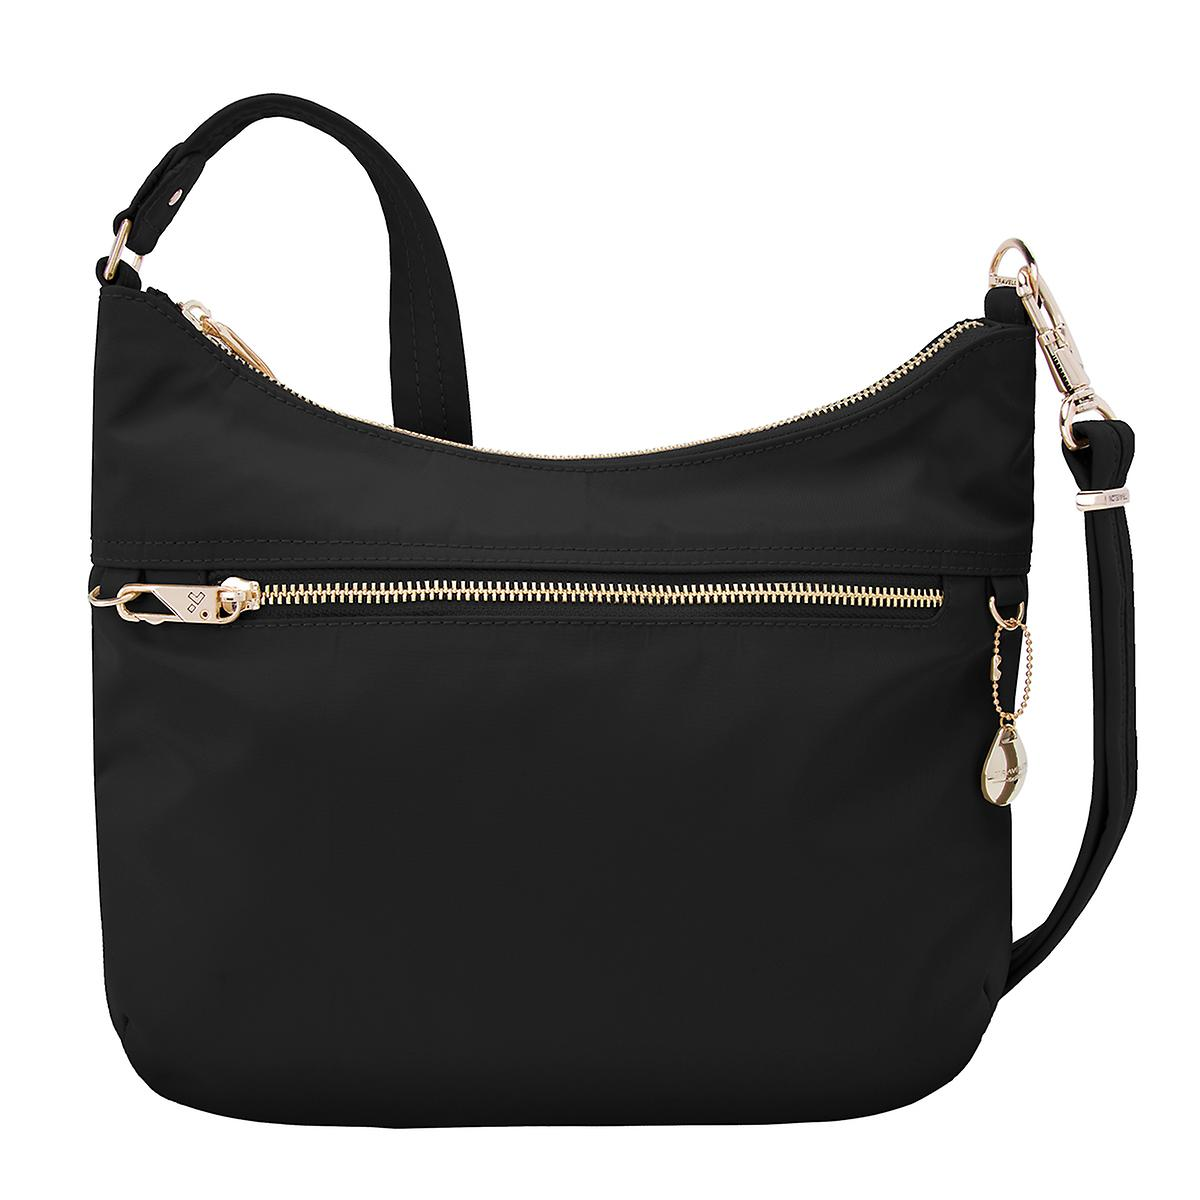 Travelon Anti-Theft Black Hobo Bag